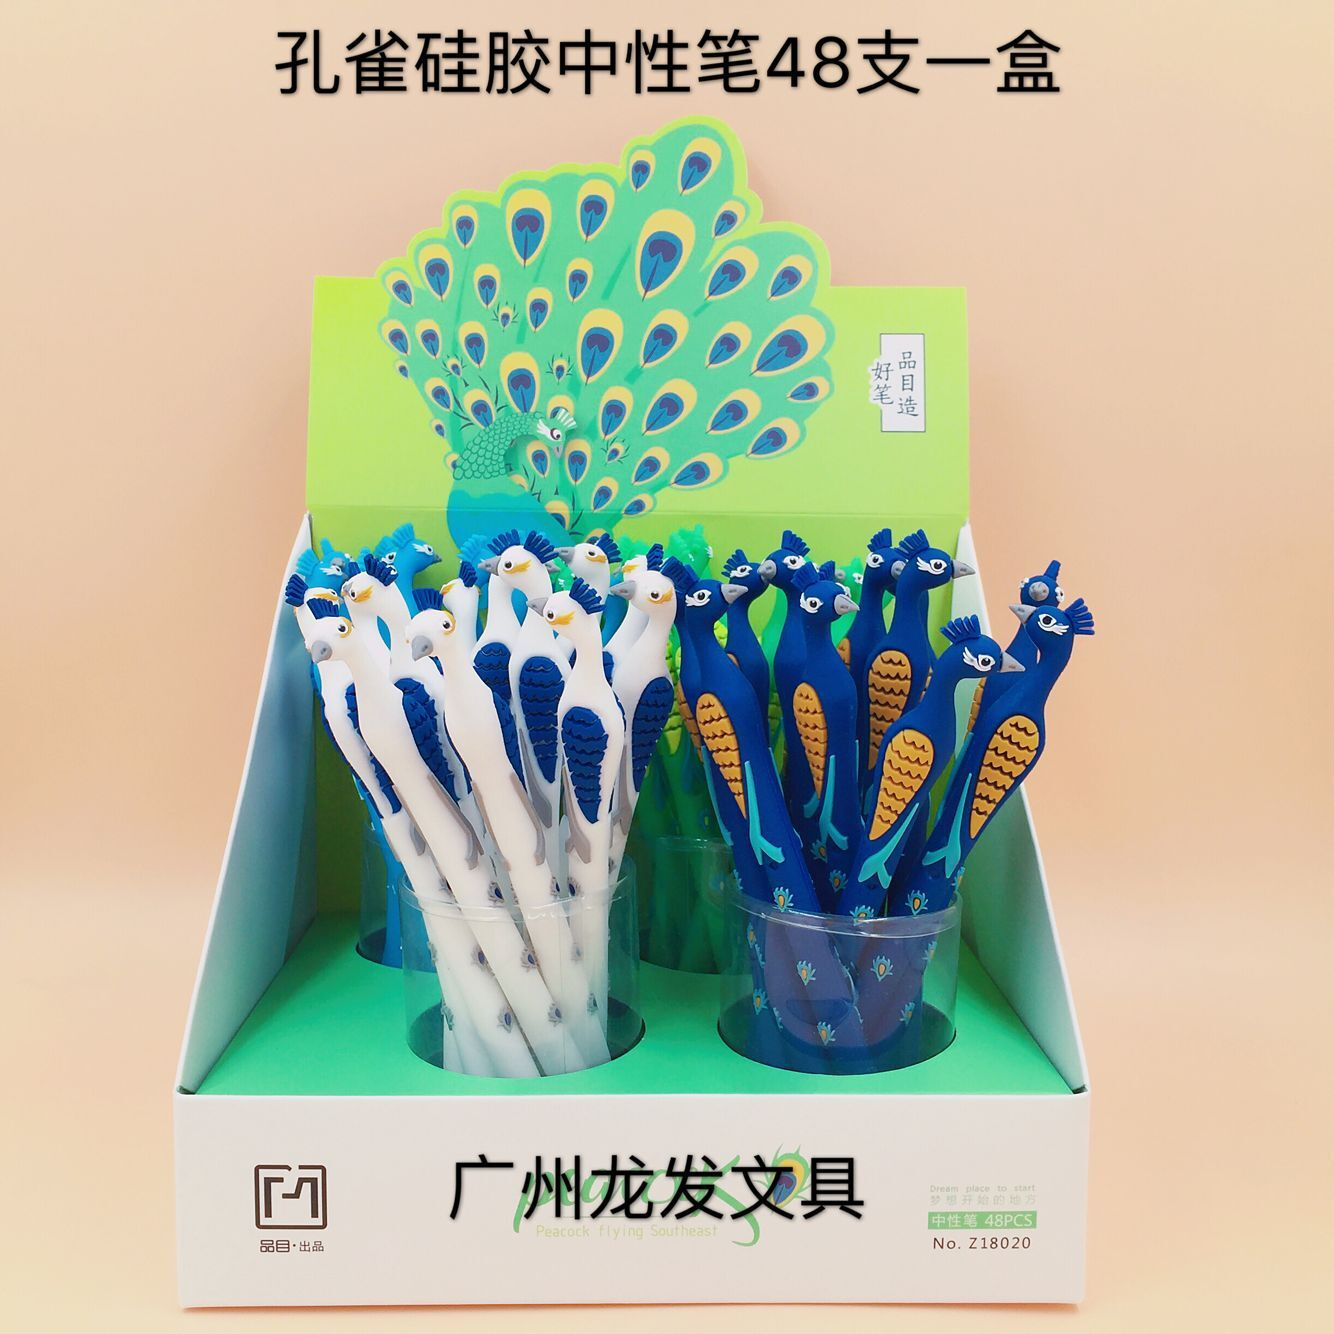 48 pcs Gel Pens Kawaii Silicone peacock black colored gel inkpens for writing Cute stationery office